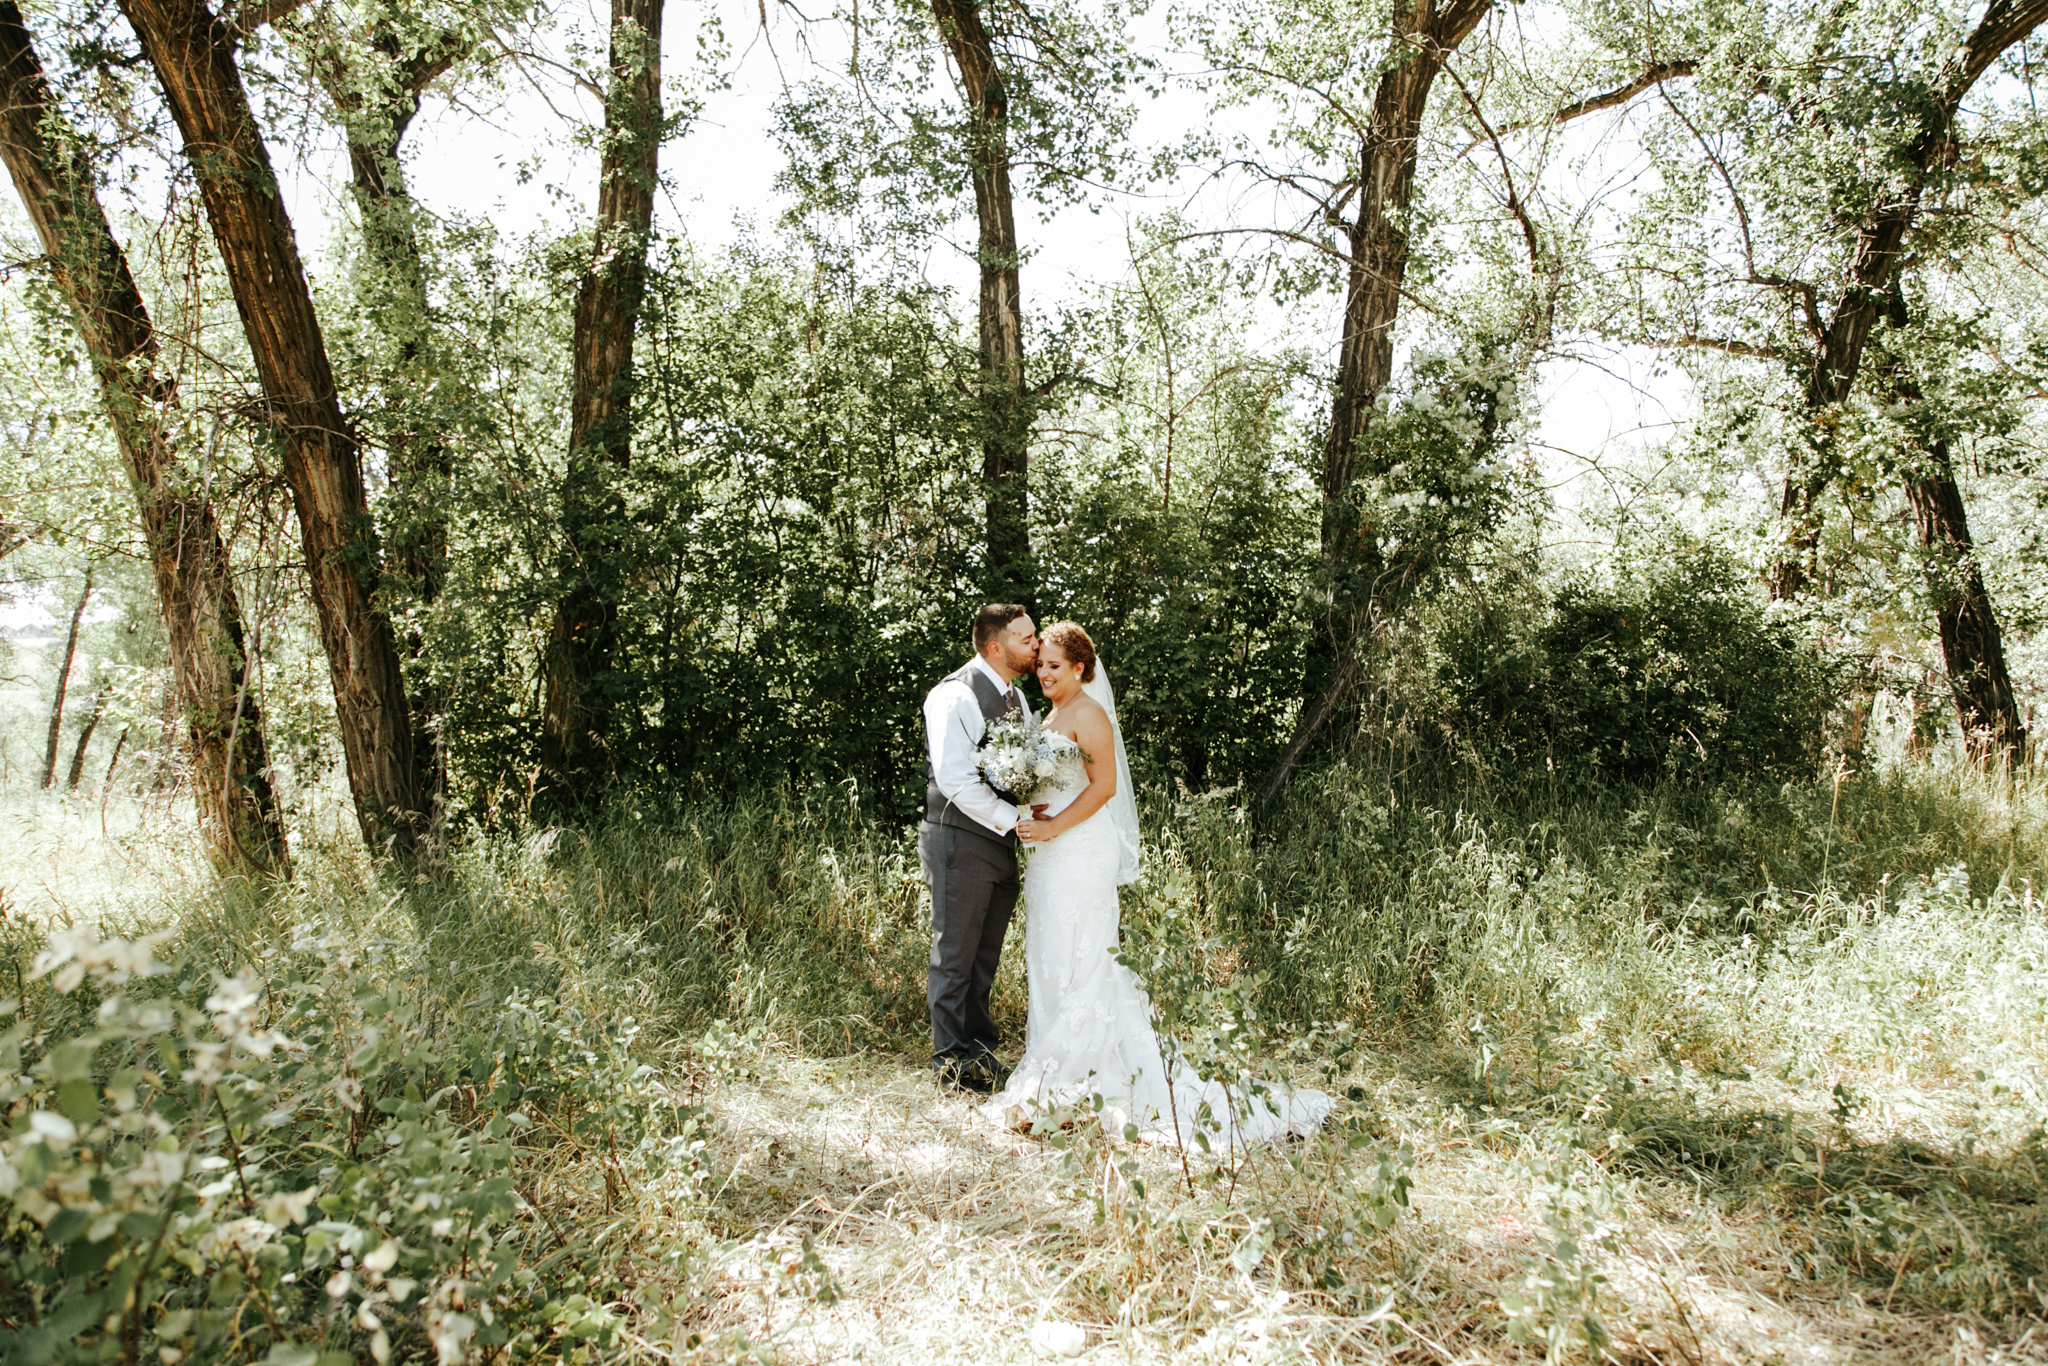 lethbridge-wedding-photographer-love-and-be-loved-photography-trent-danielle-galt-reception-picture-image-photo-114.jpg